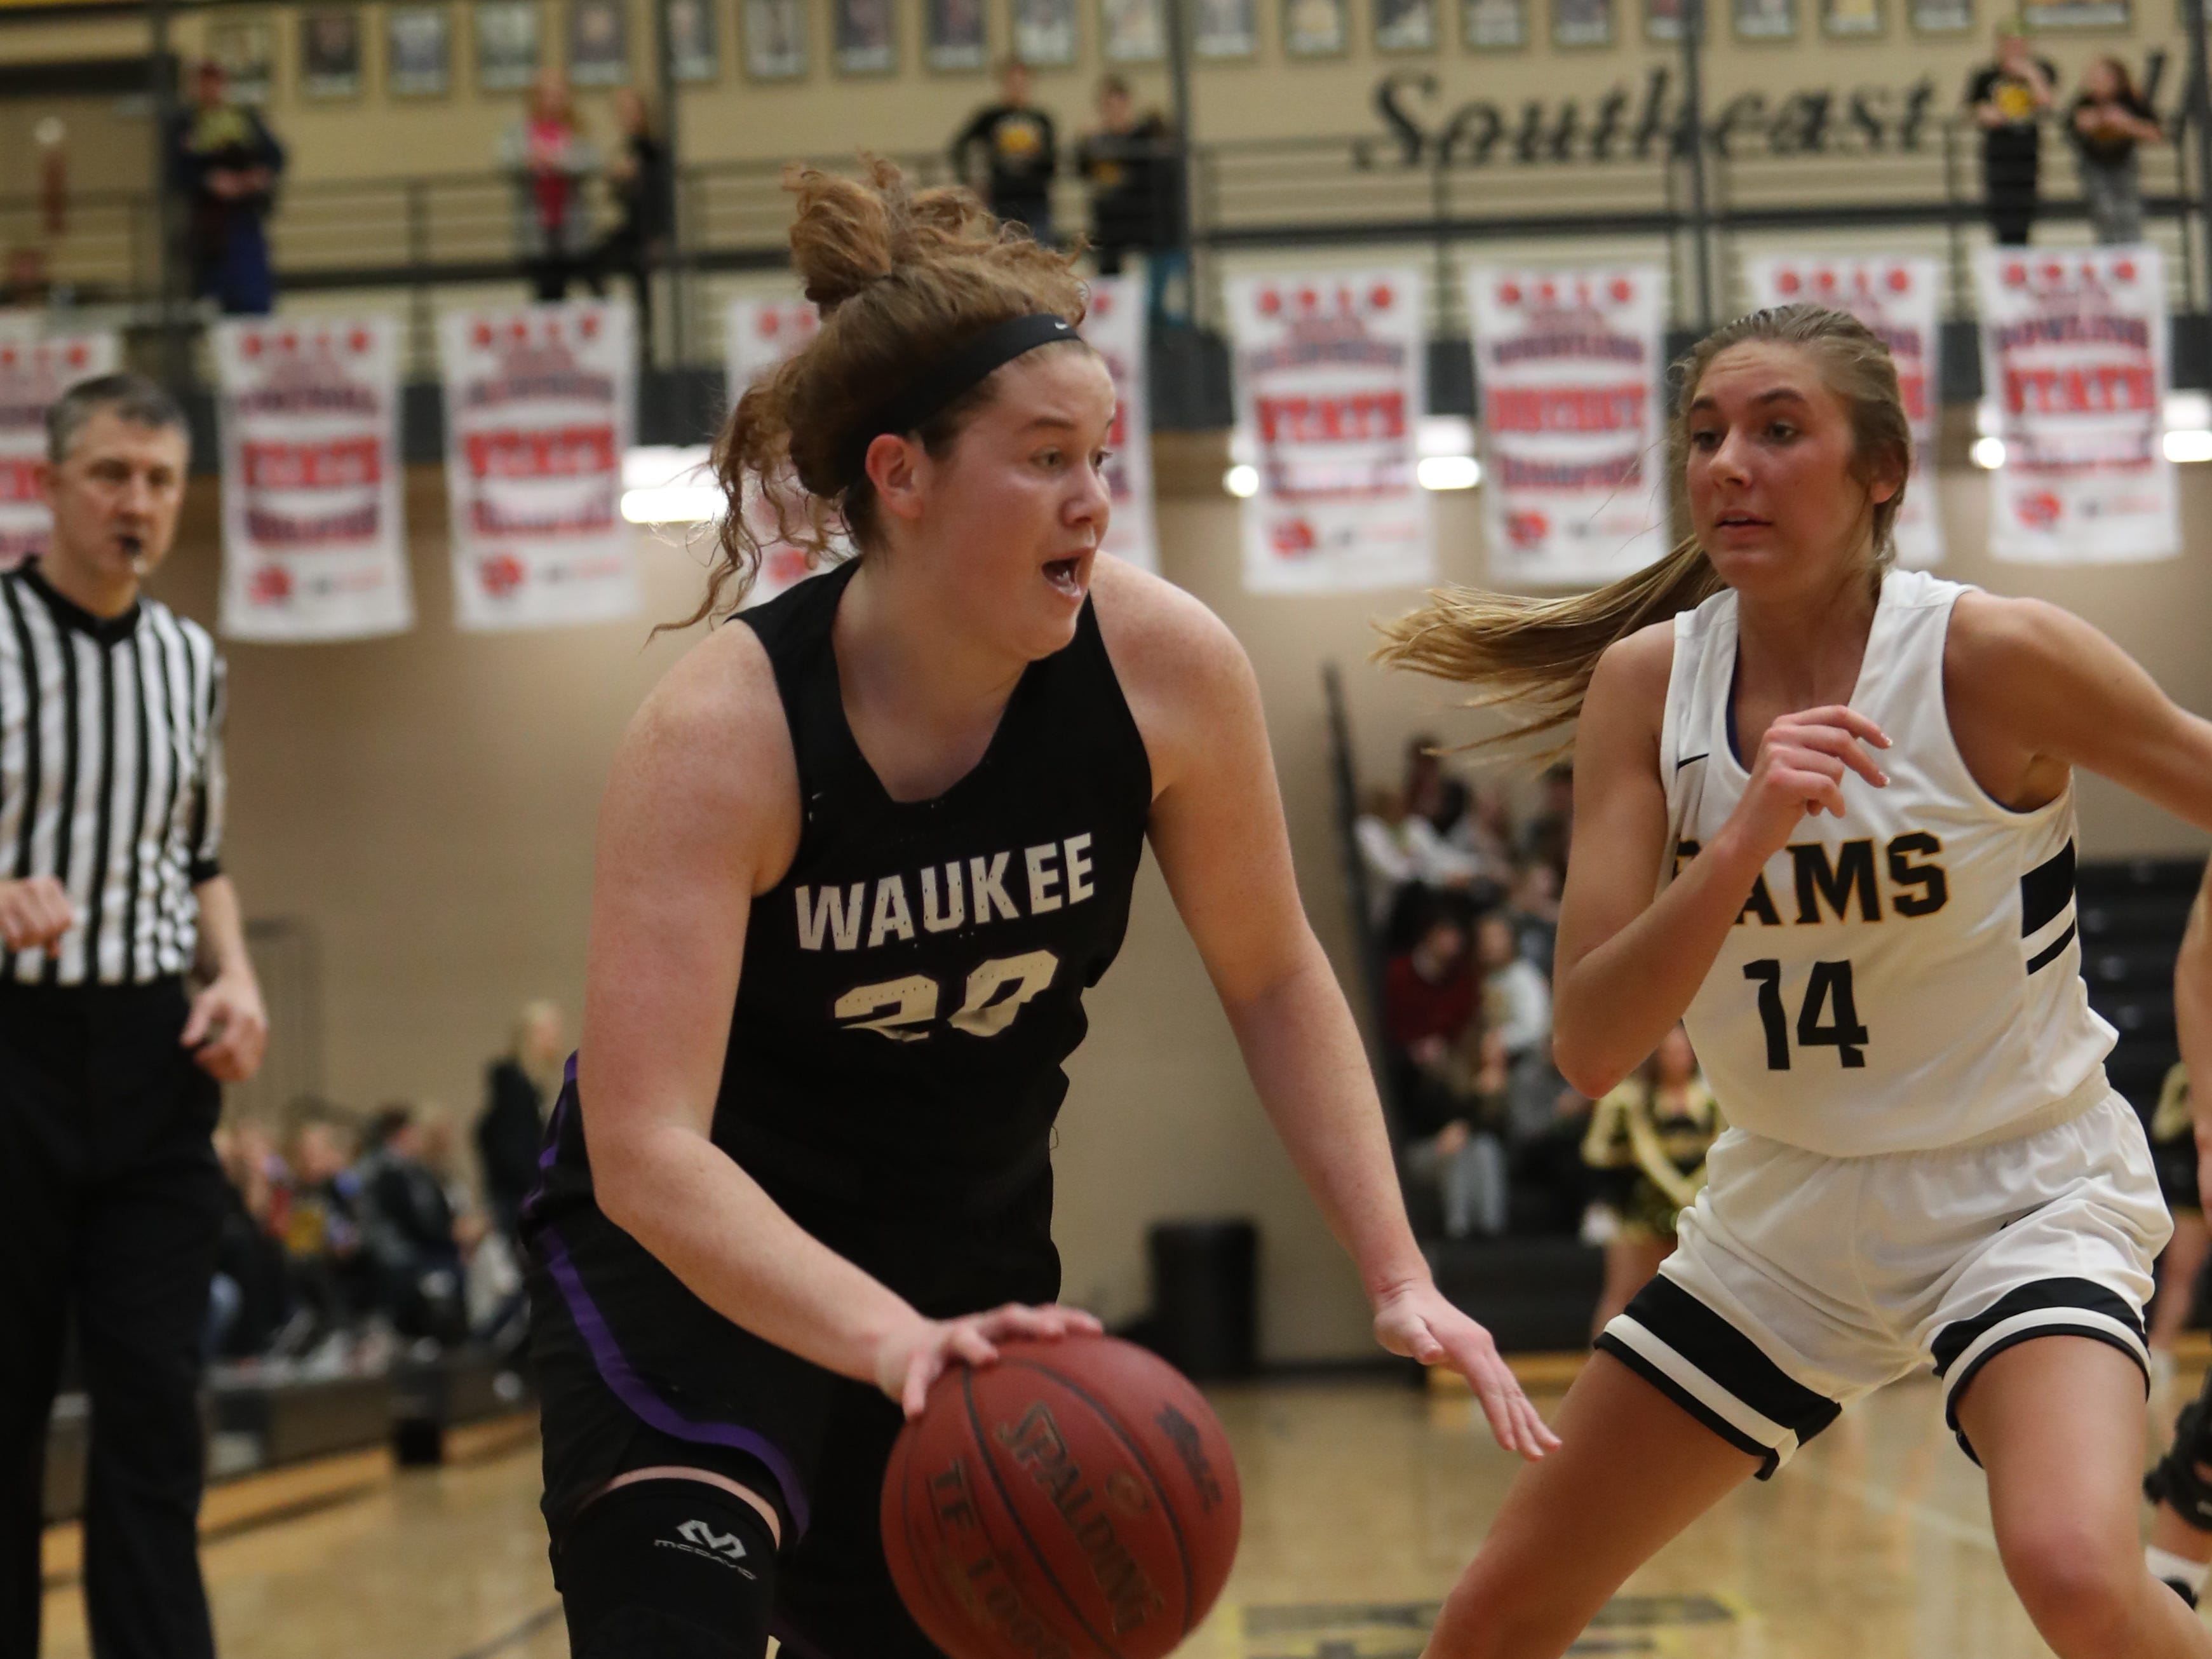 Waukee Warriors' Anna Brown (20) drives past Southeast Polk Rams' Jessica Stuart (14) during a game Feb. 1, 2019 at Southeast Polk High School. The Warriors beat the Rams 66 to 43.